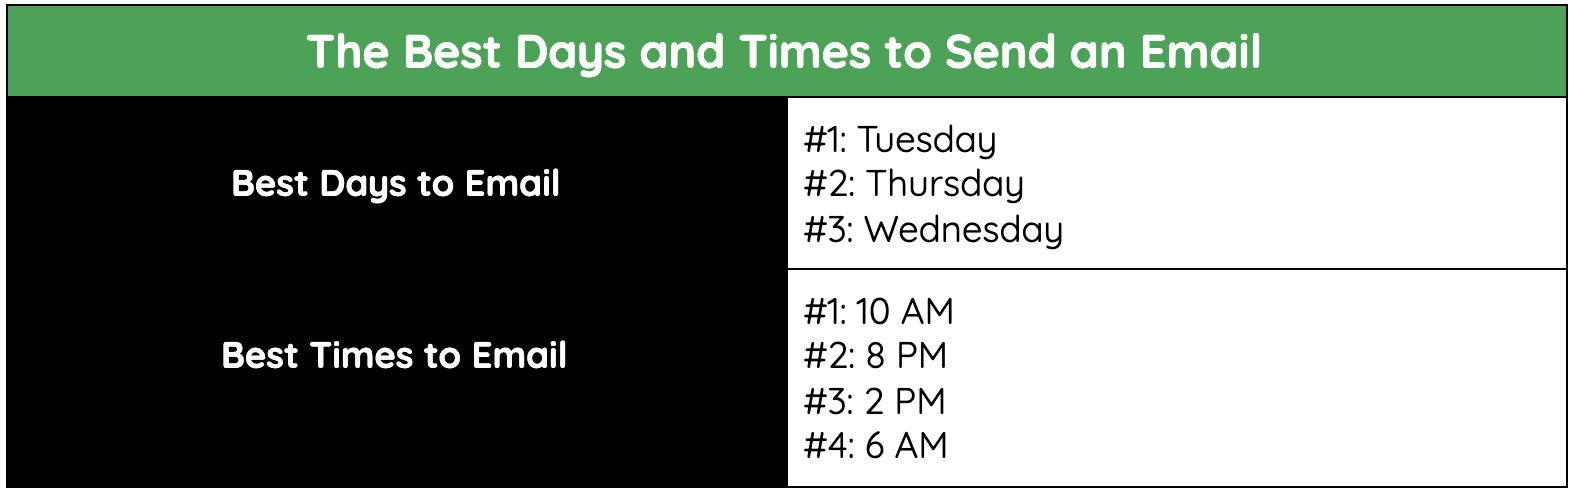 The best times to send an email to leads